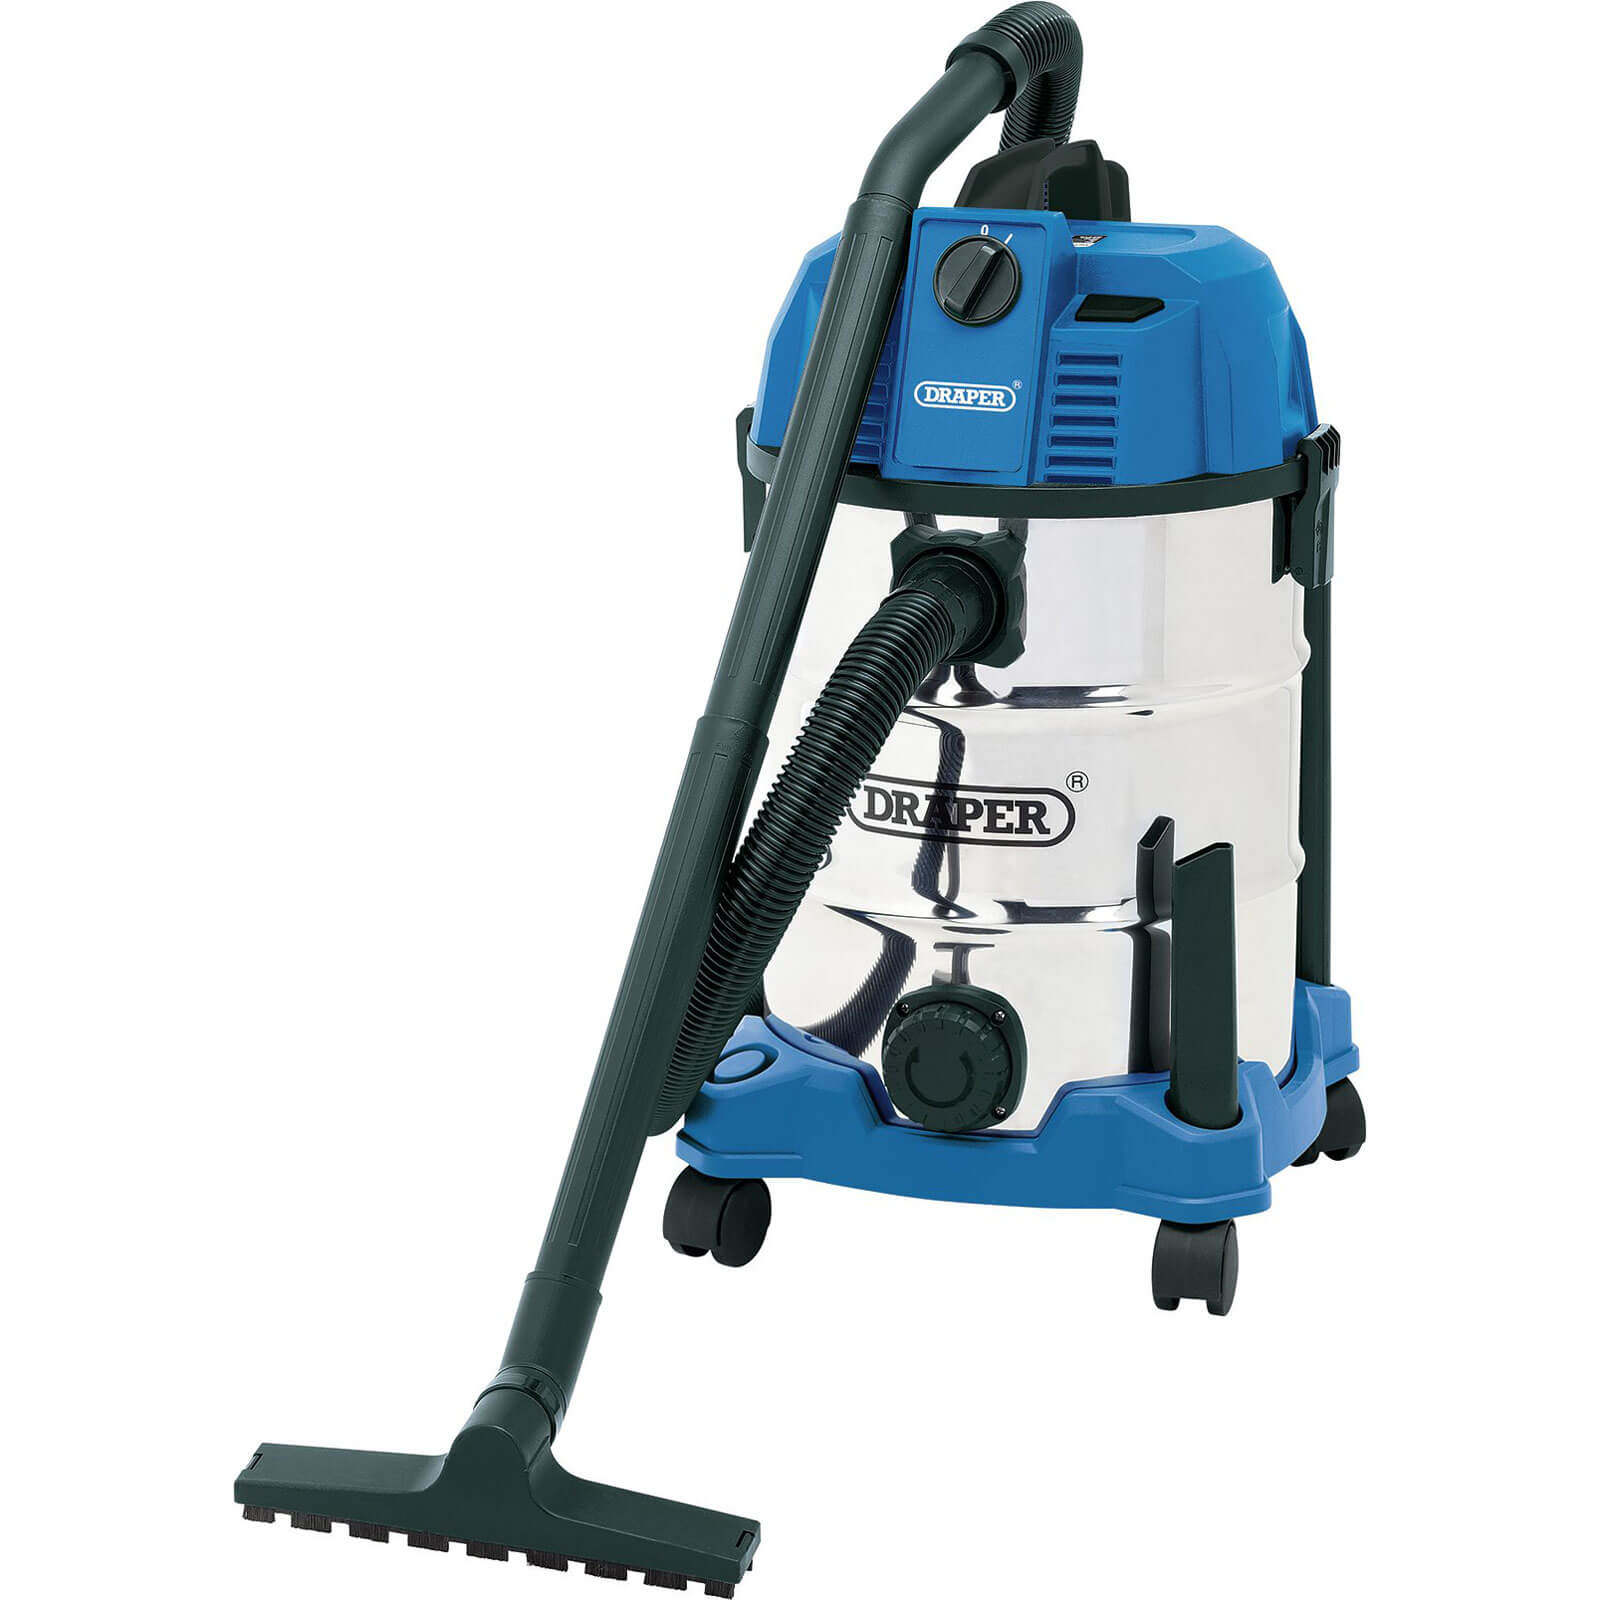 Draper 30L Wet and Dry Vacuum Cleaner With Stainless Steel Tank 1600W 240v